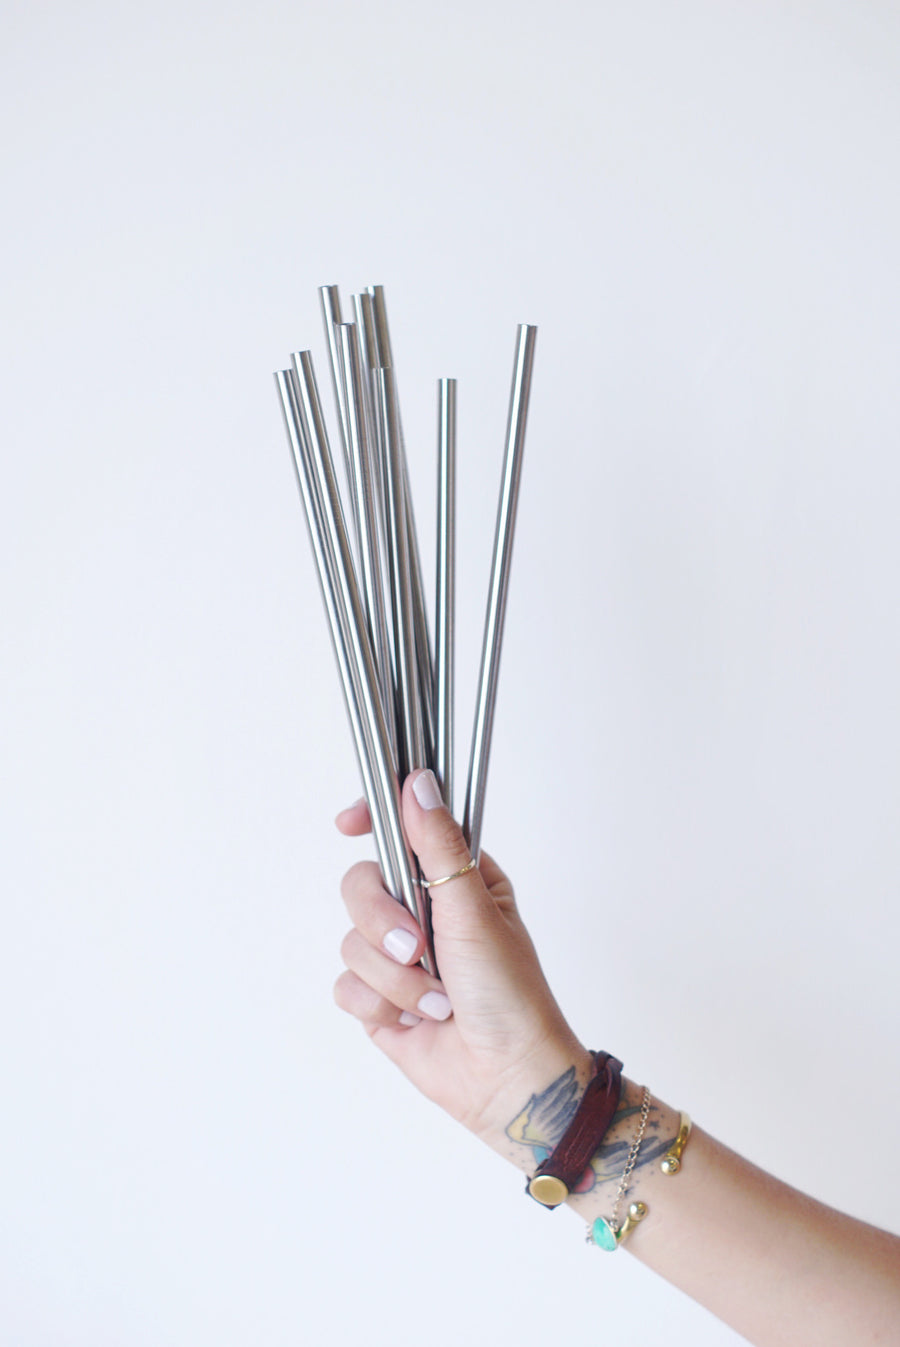 Metal Straws (Bent and Straight)